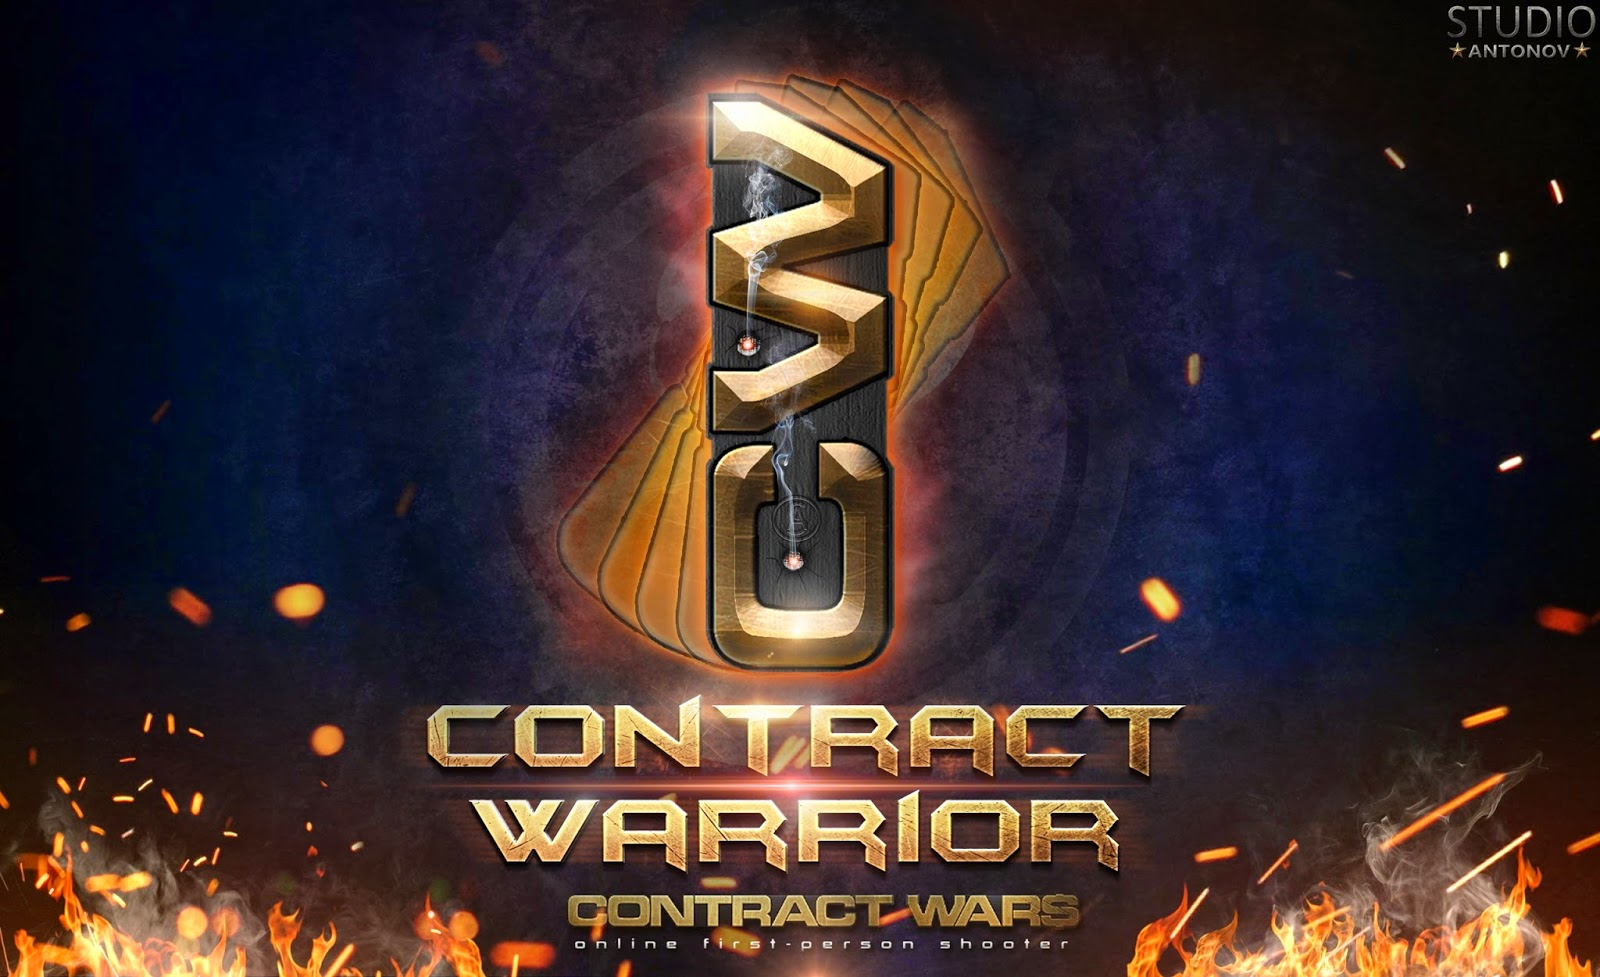 contract wars 2